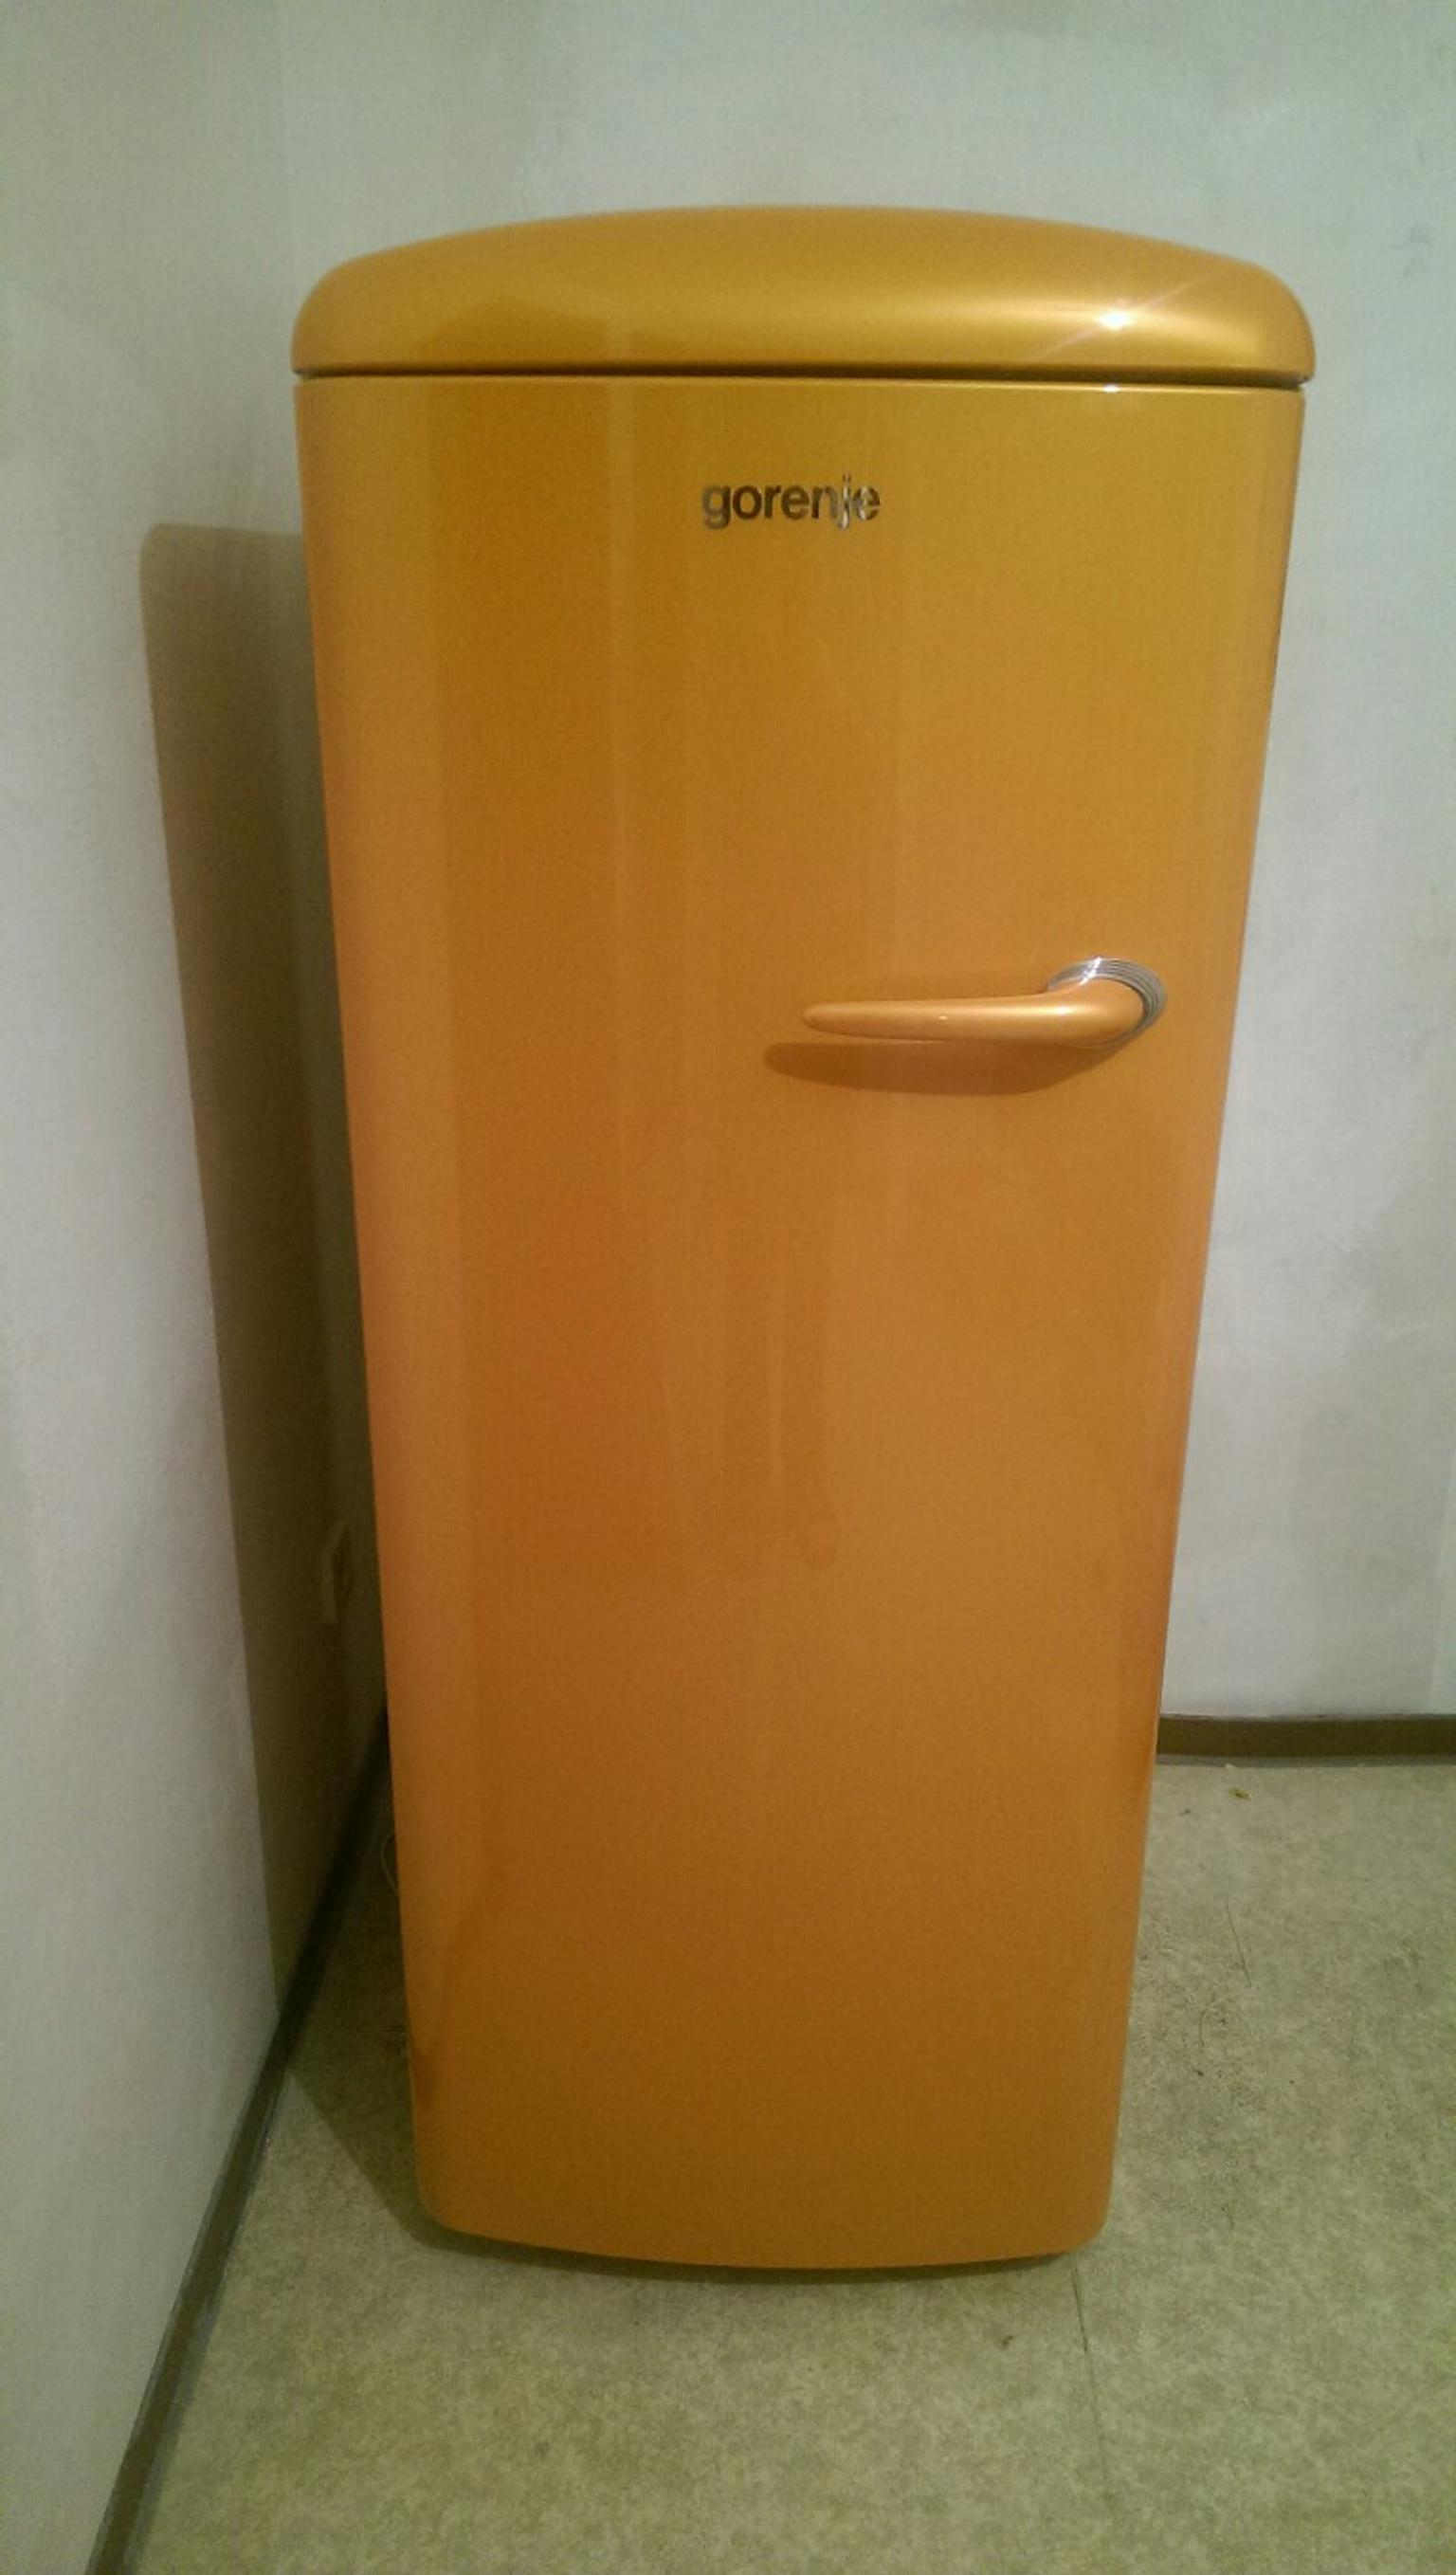 Retro Kühlschrank Orange Gorenje Kühlschrank Retro Juicy Orange